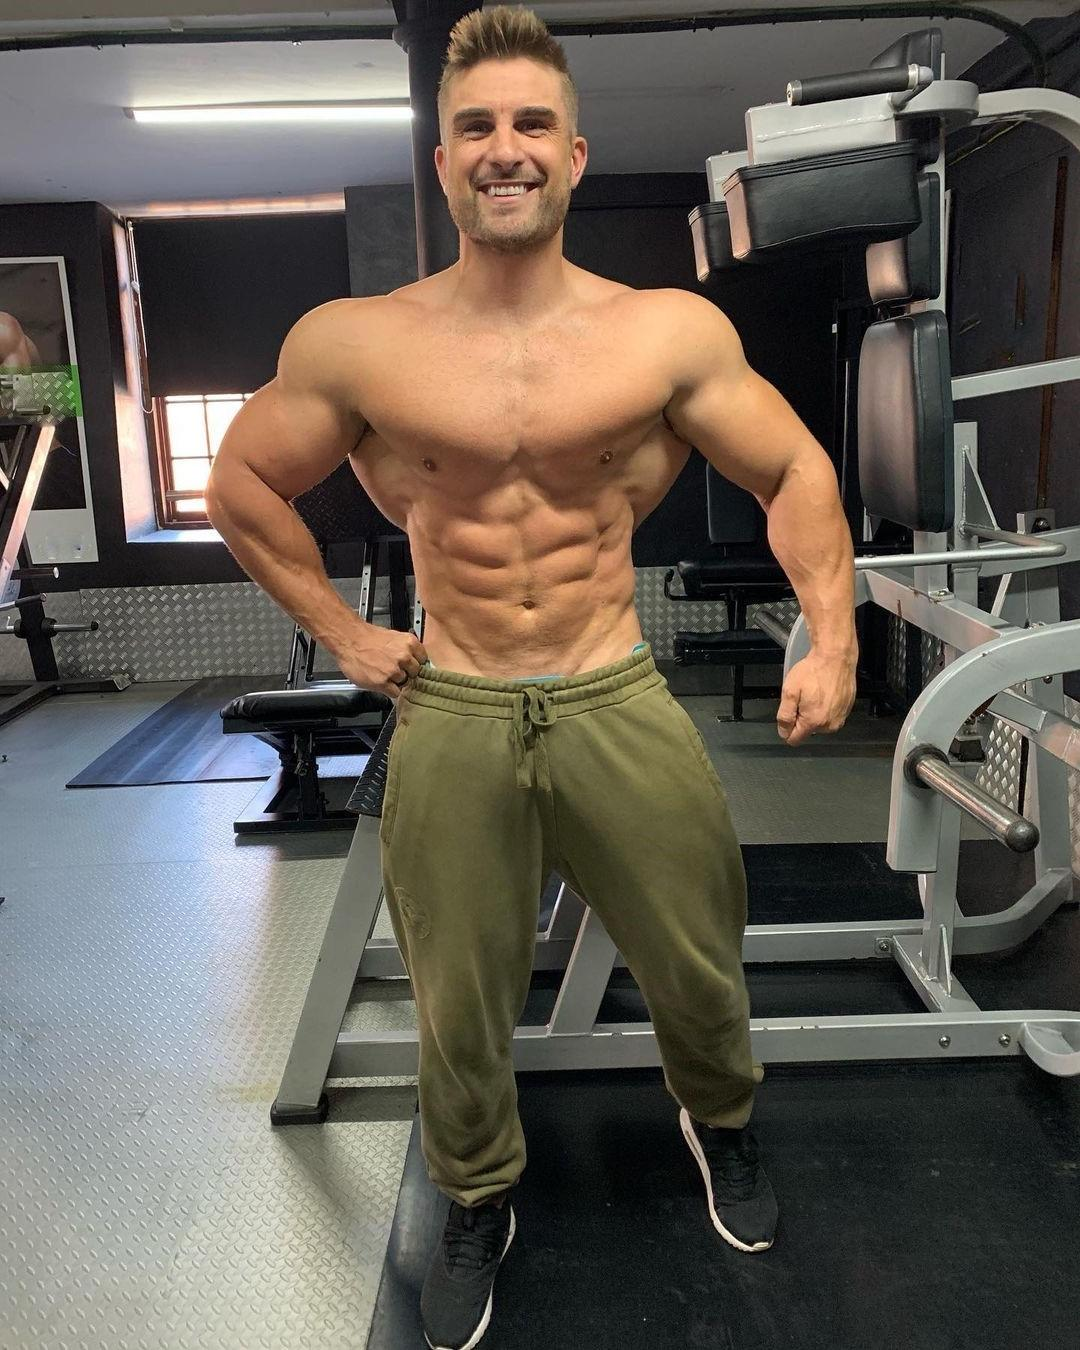 sexy-muscular-dilfs-ryan-terry-barechest-bodybuilders-hot-gym-daddy-smiling-wide-shoulders